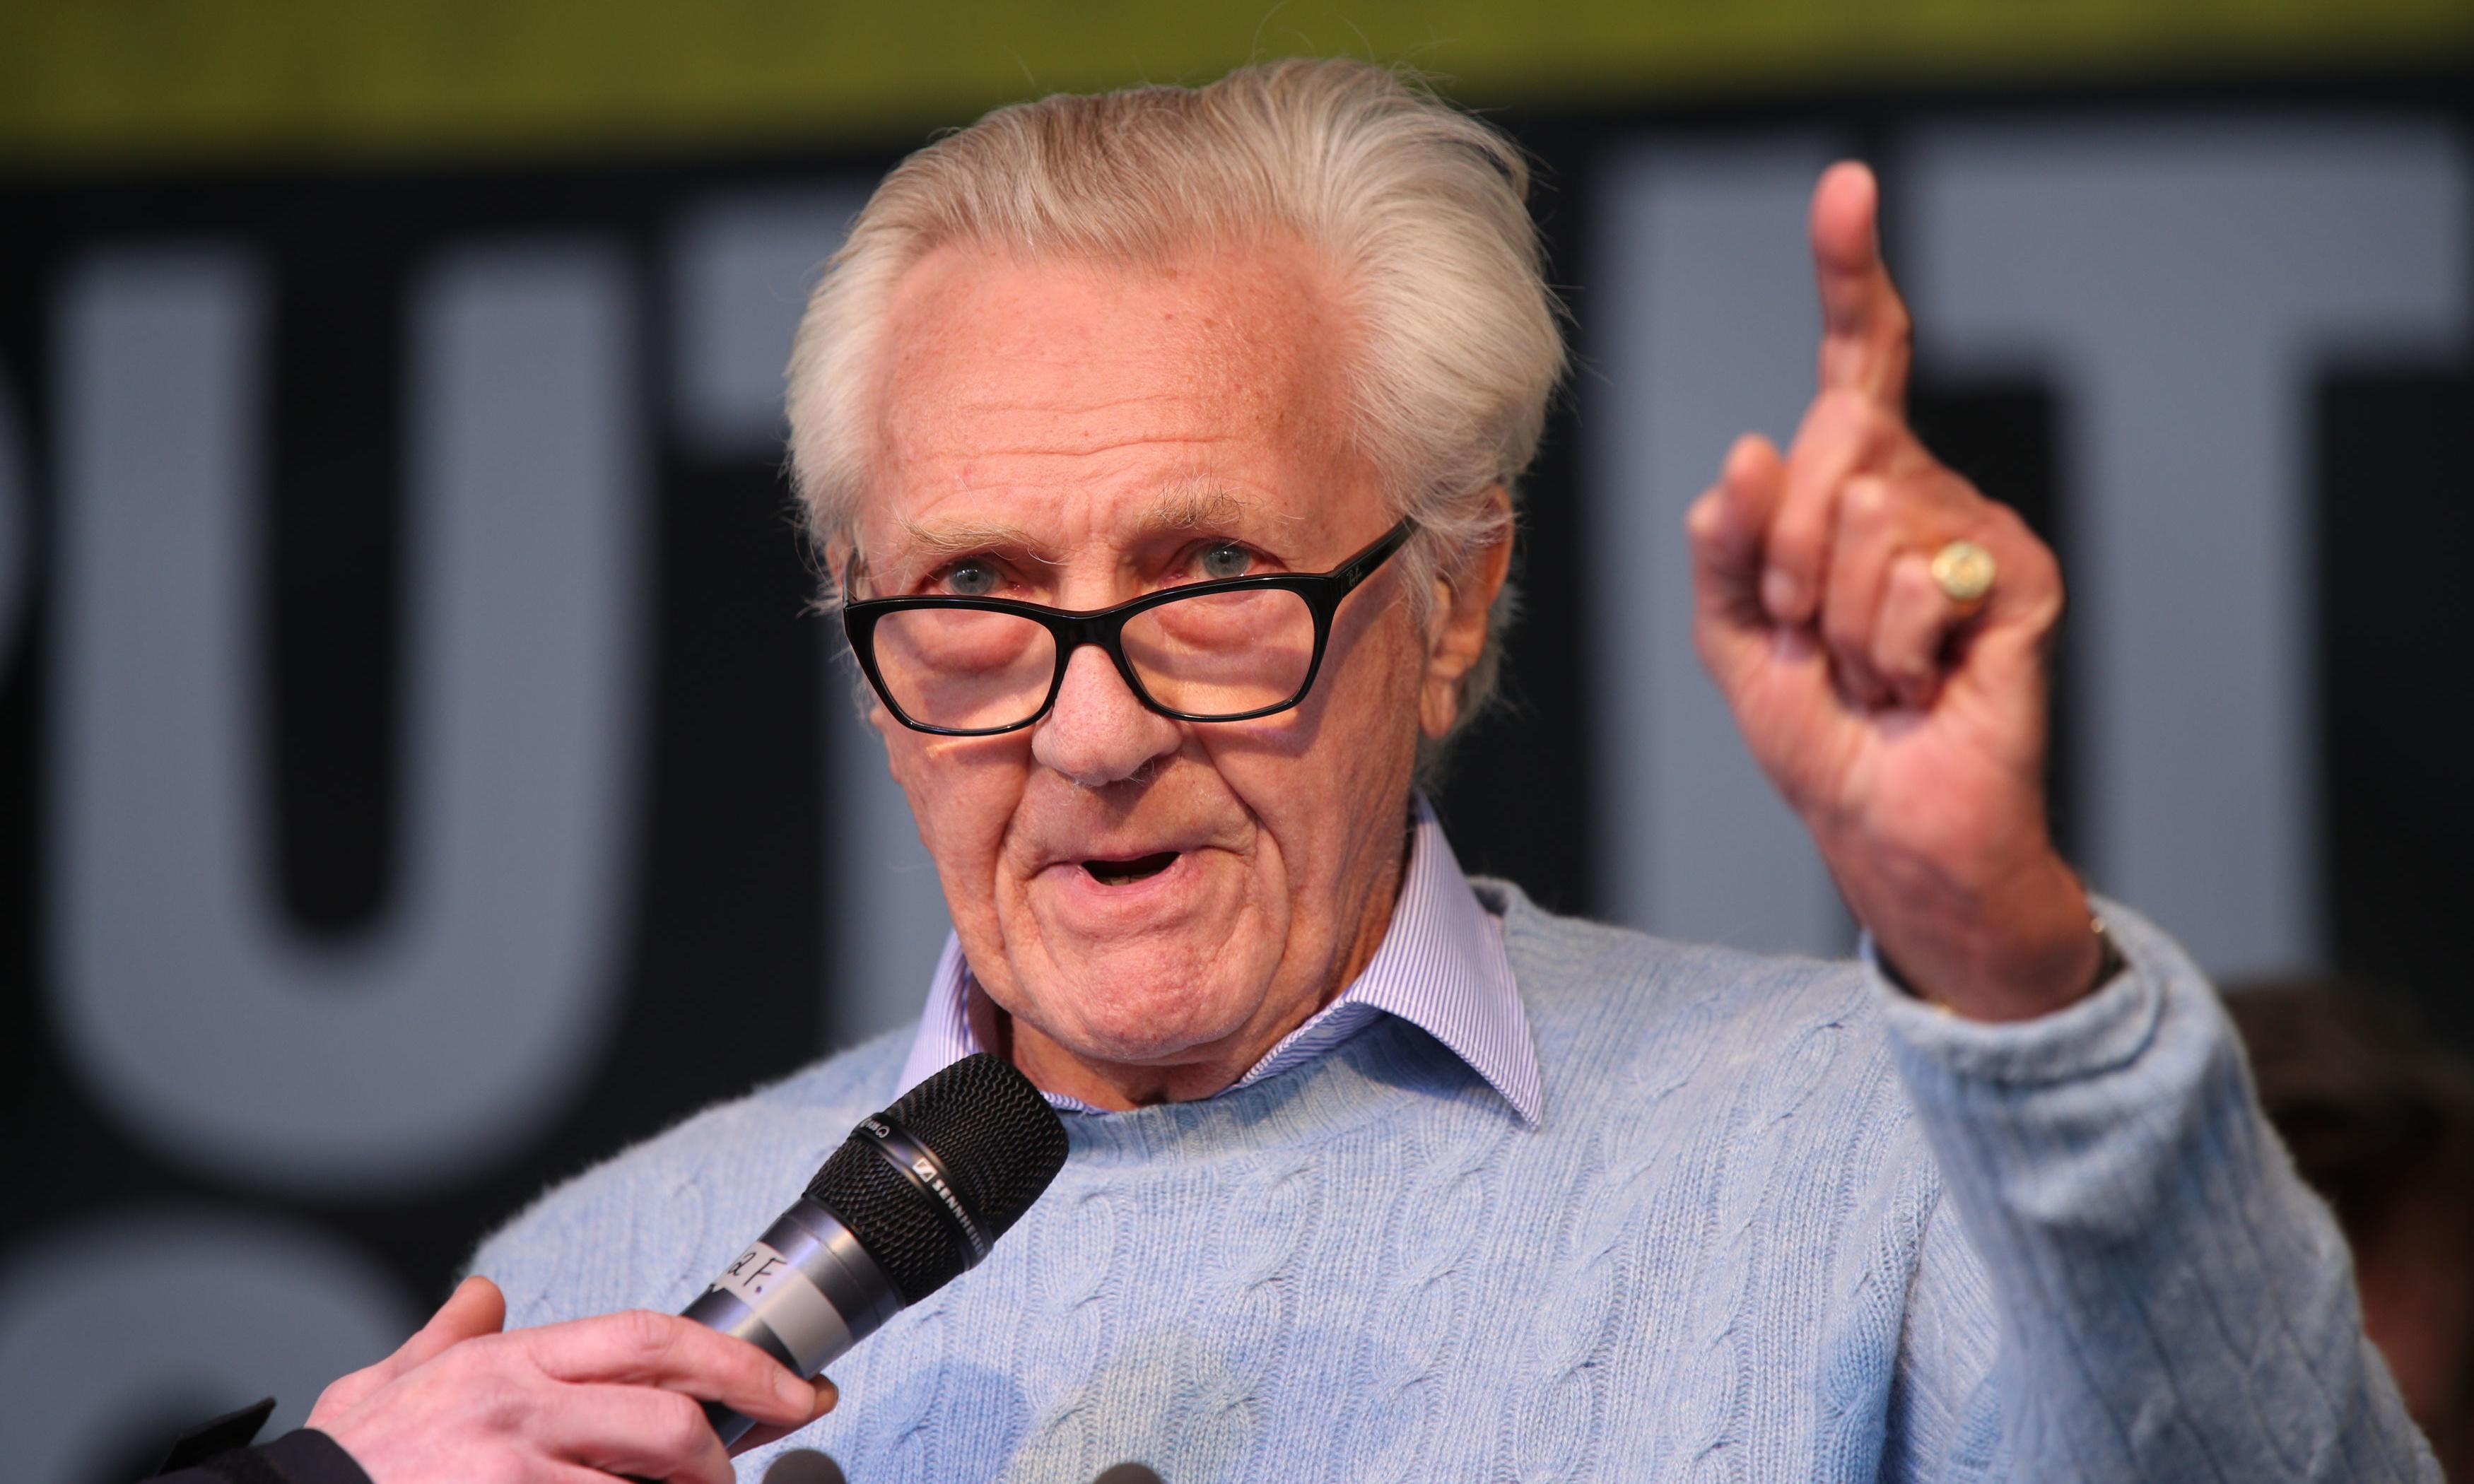 Want to stop Johnson? More Tories should follow Heseltine and join the resistance